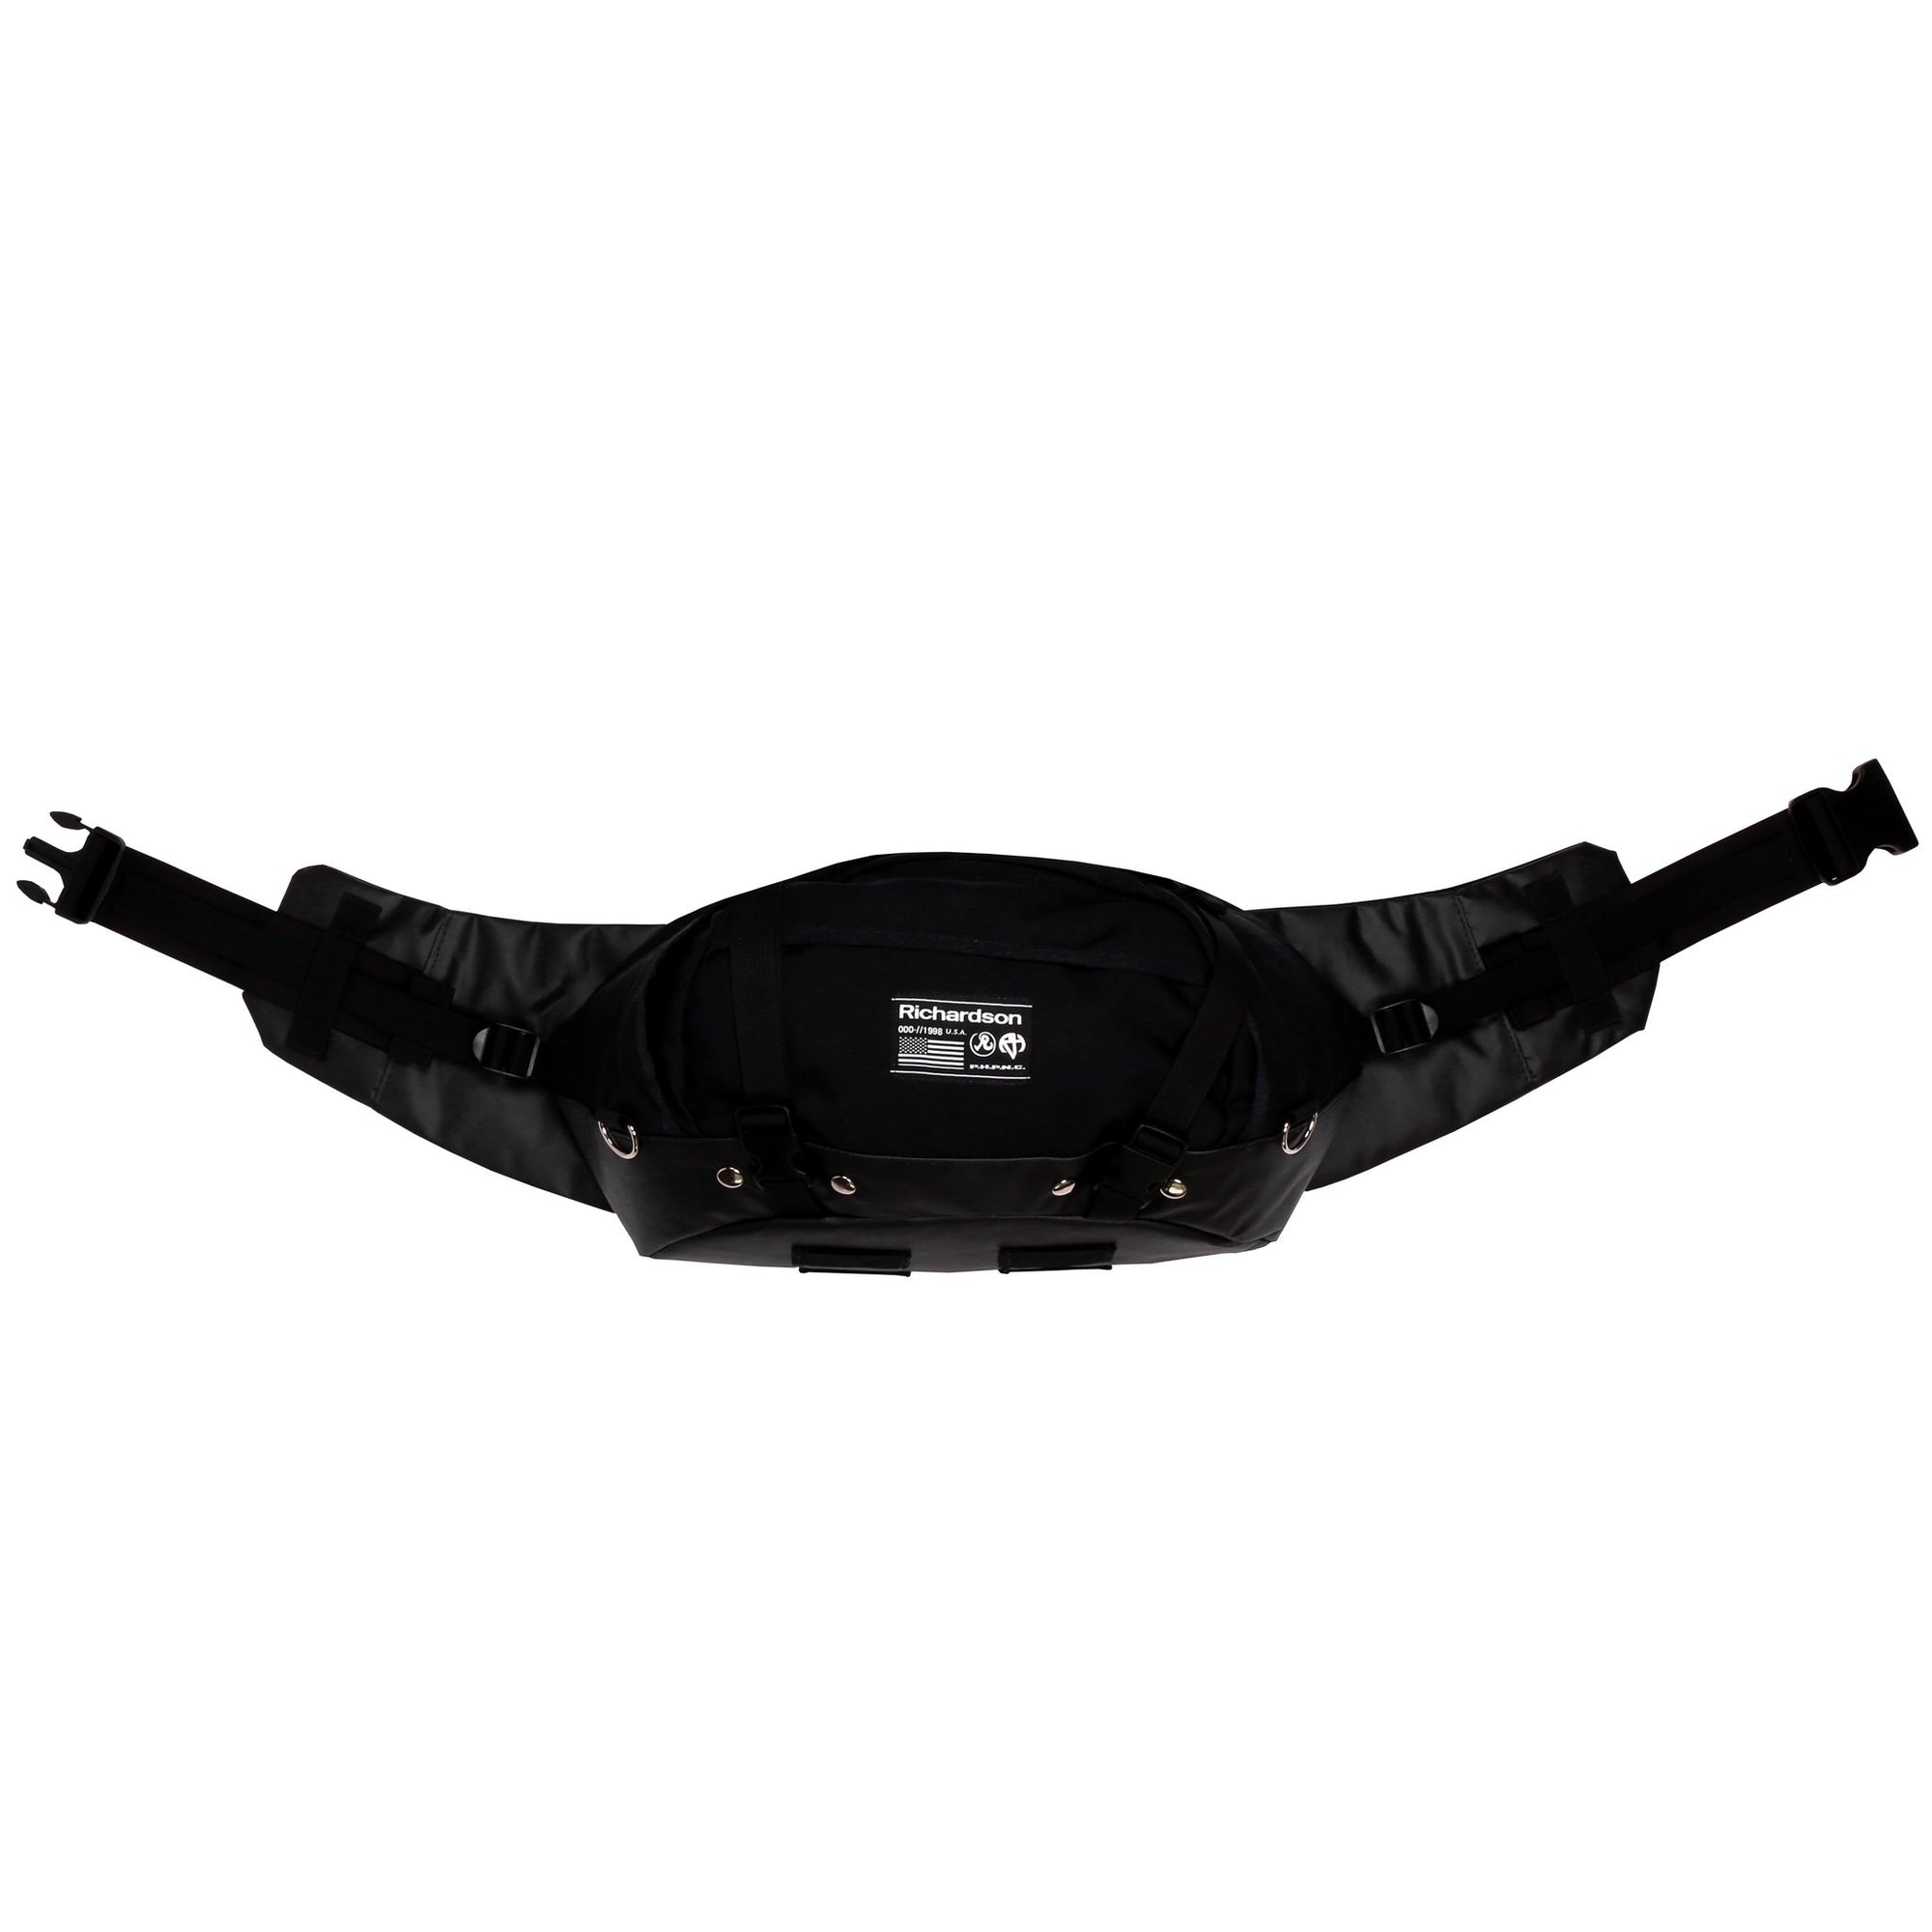 Belt Bag (Black)